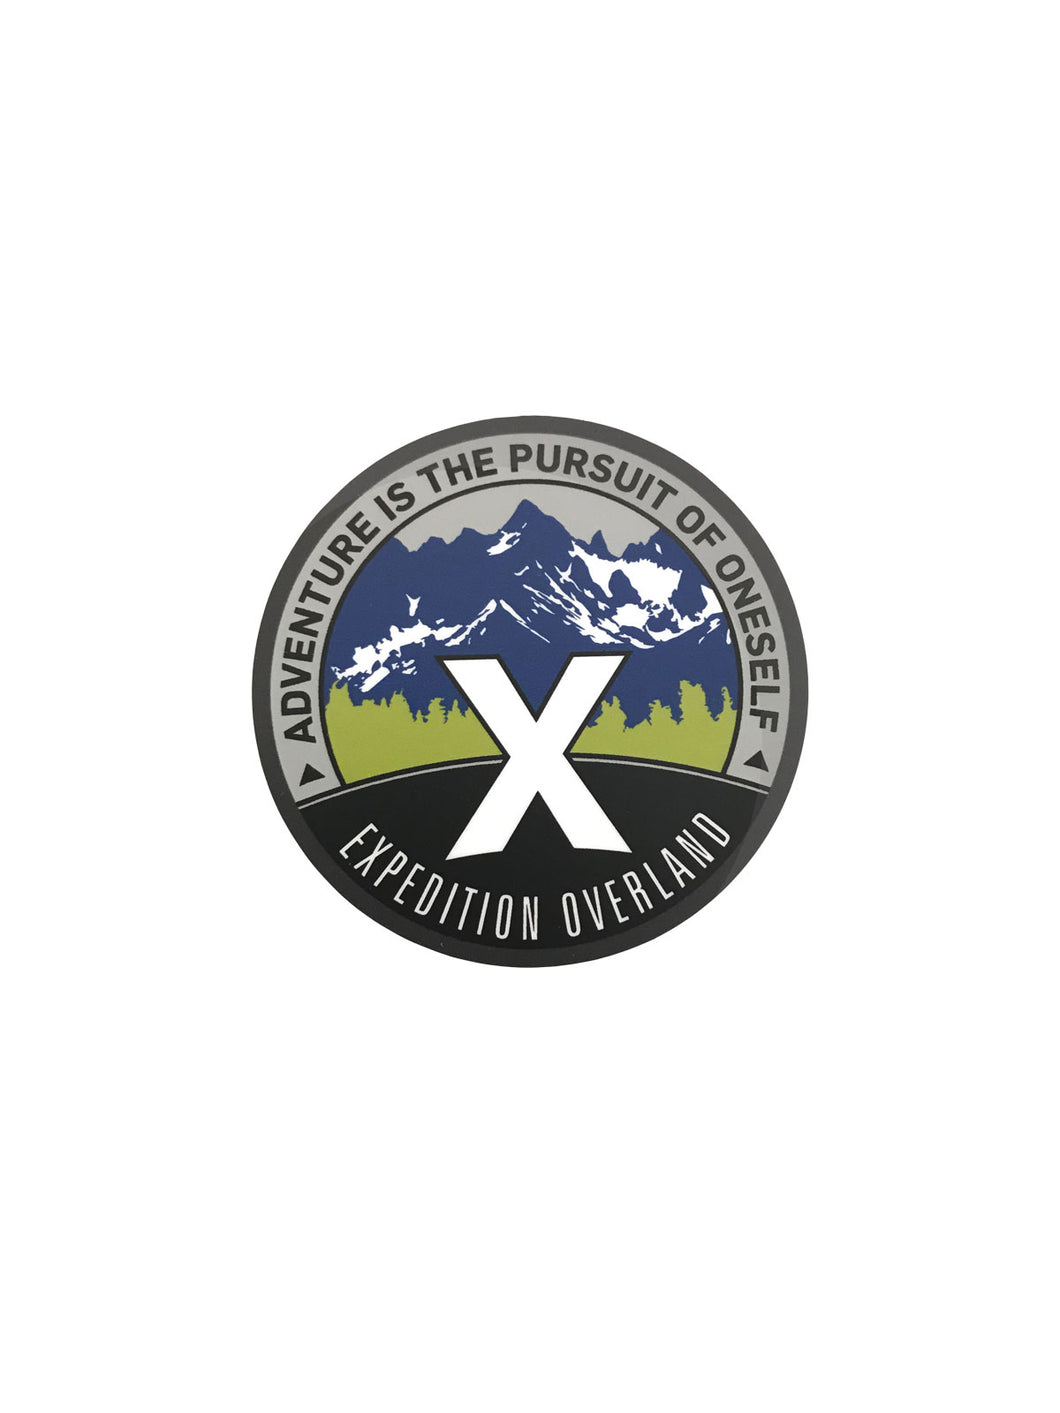 X Overland™ Pursuit Decal